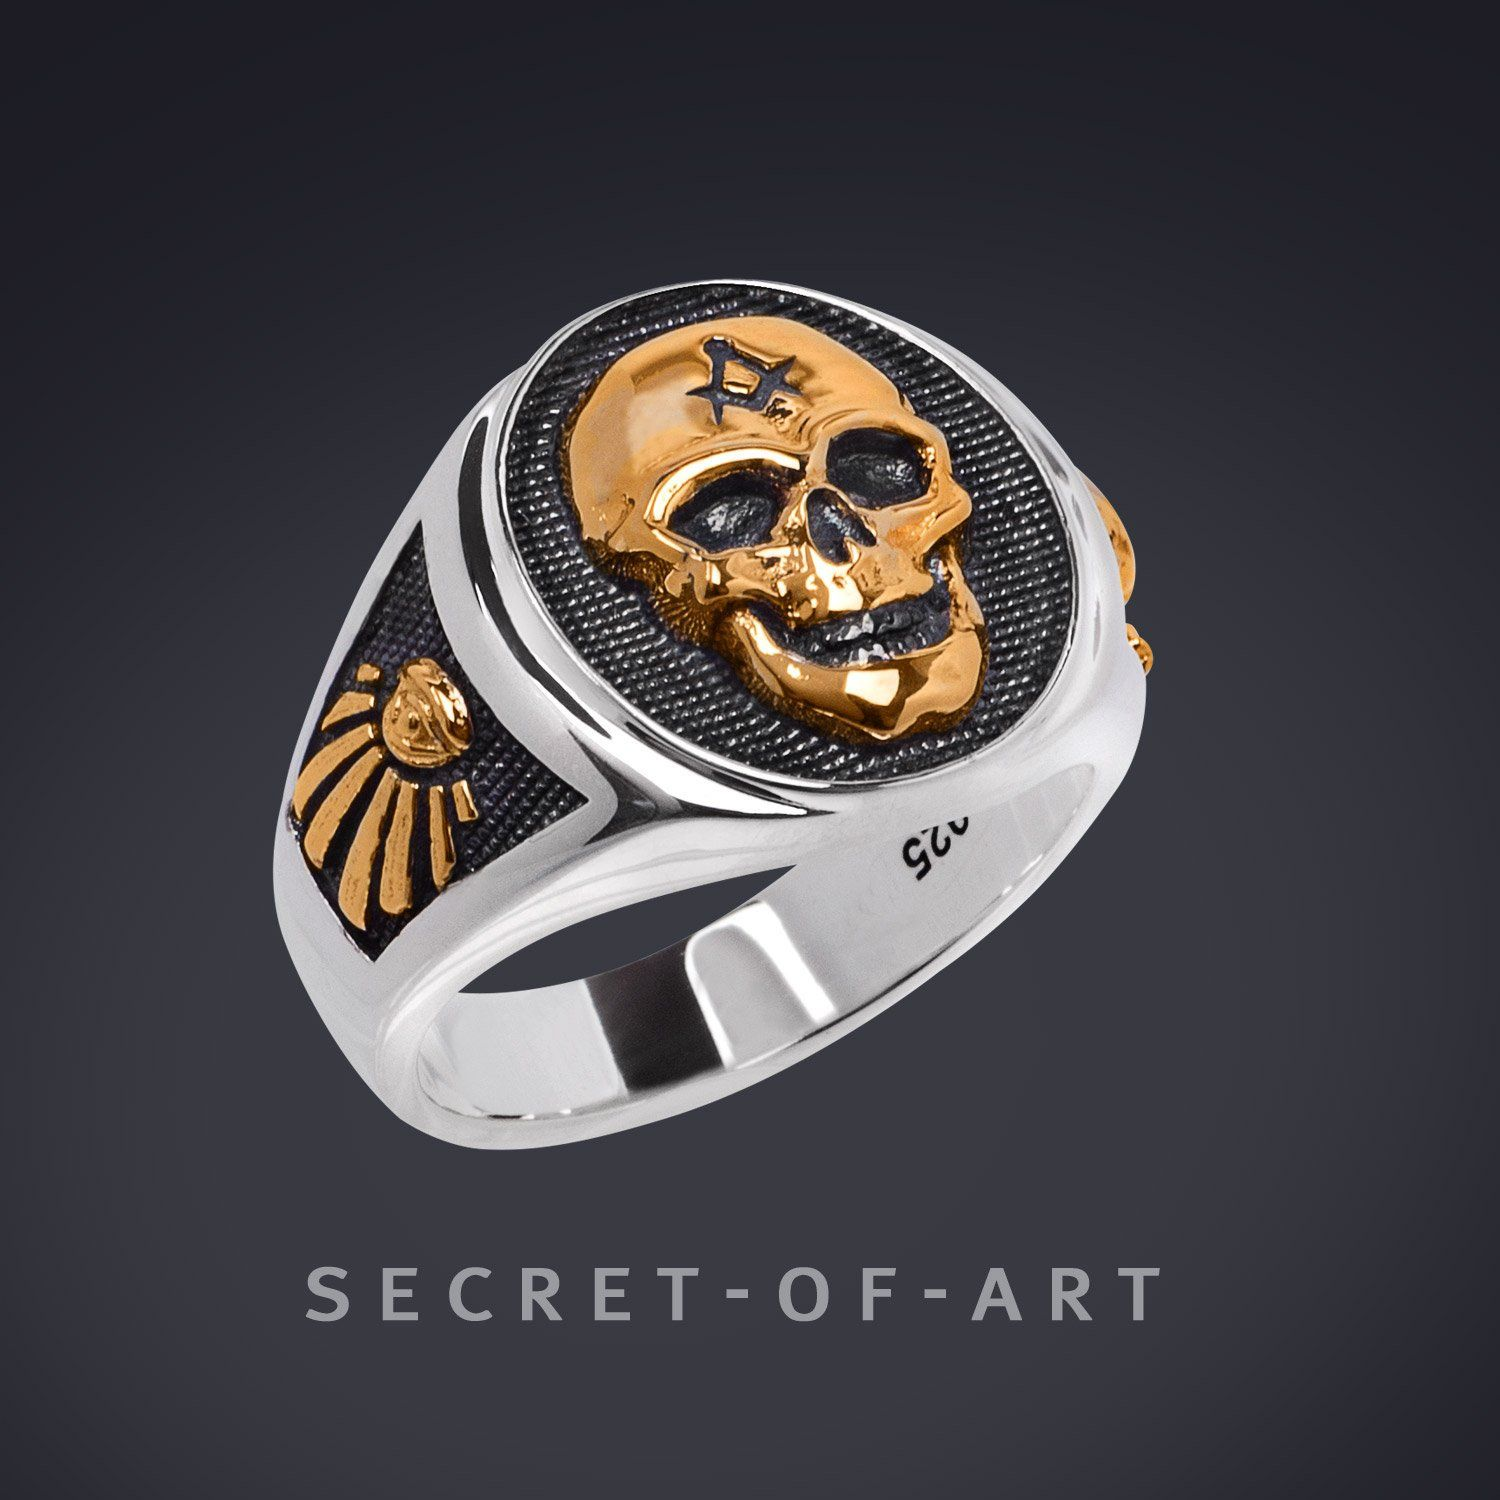 Masonic Silver 925 Big Skull Ring 24kGold Plated Parts with All Seeing Eye  Sygnet in 2019